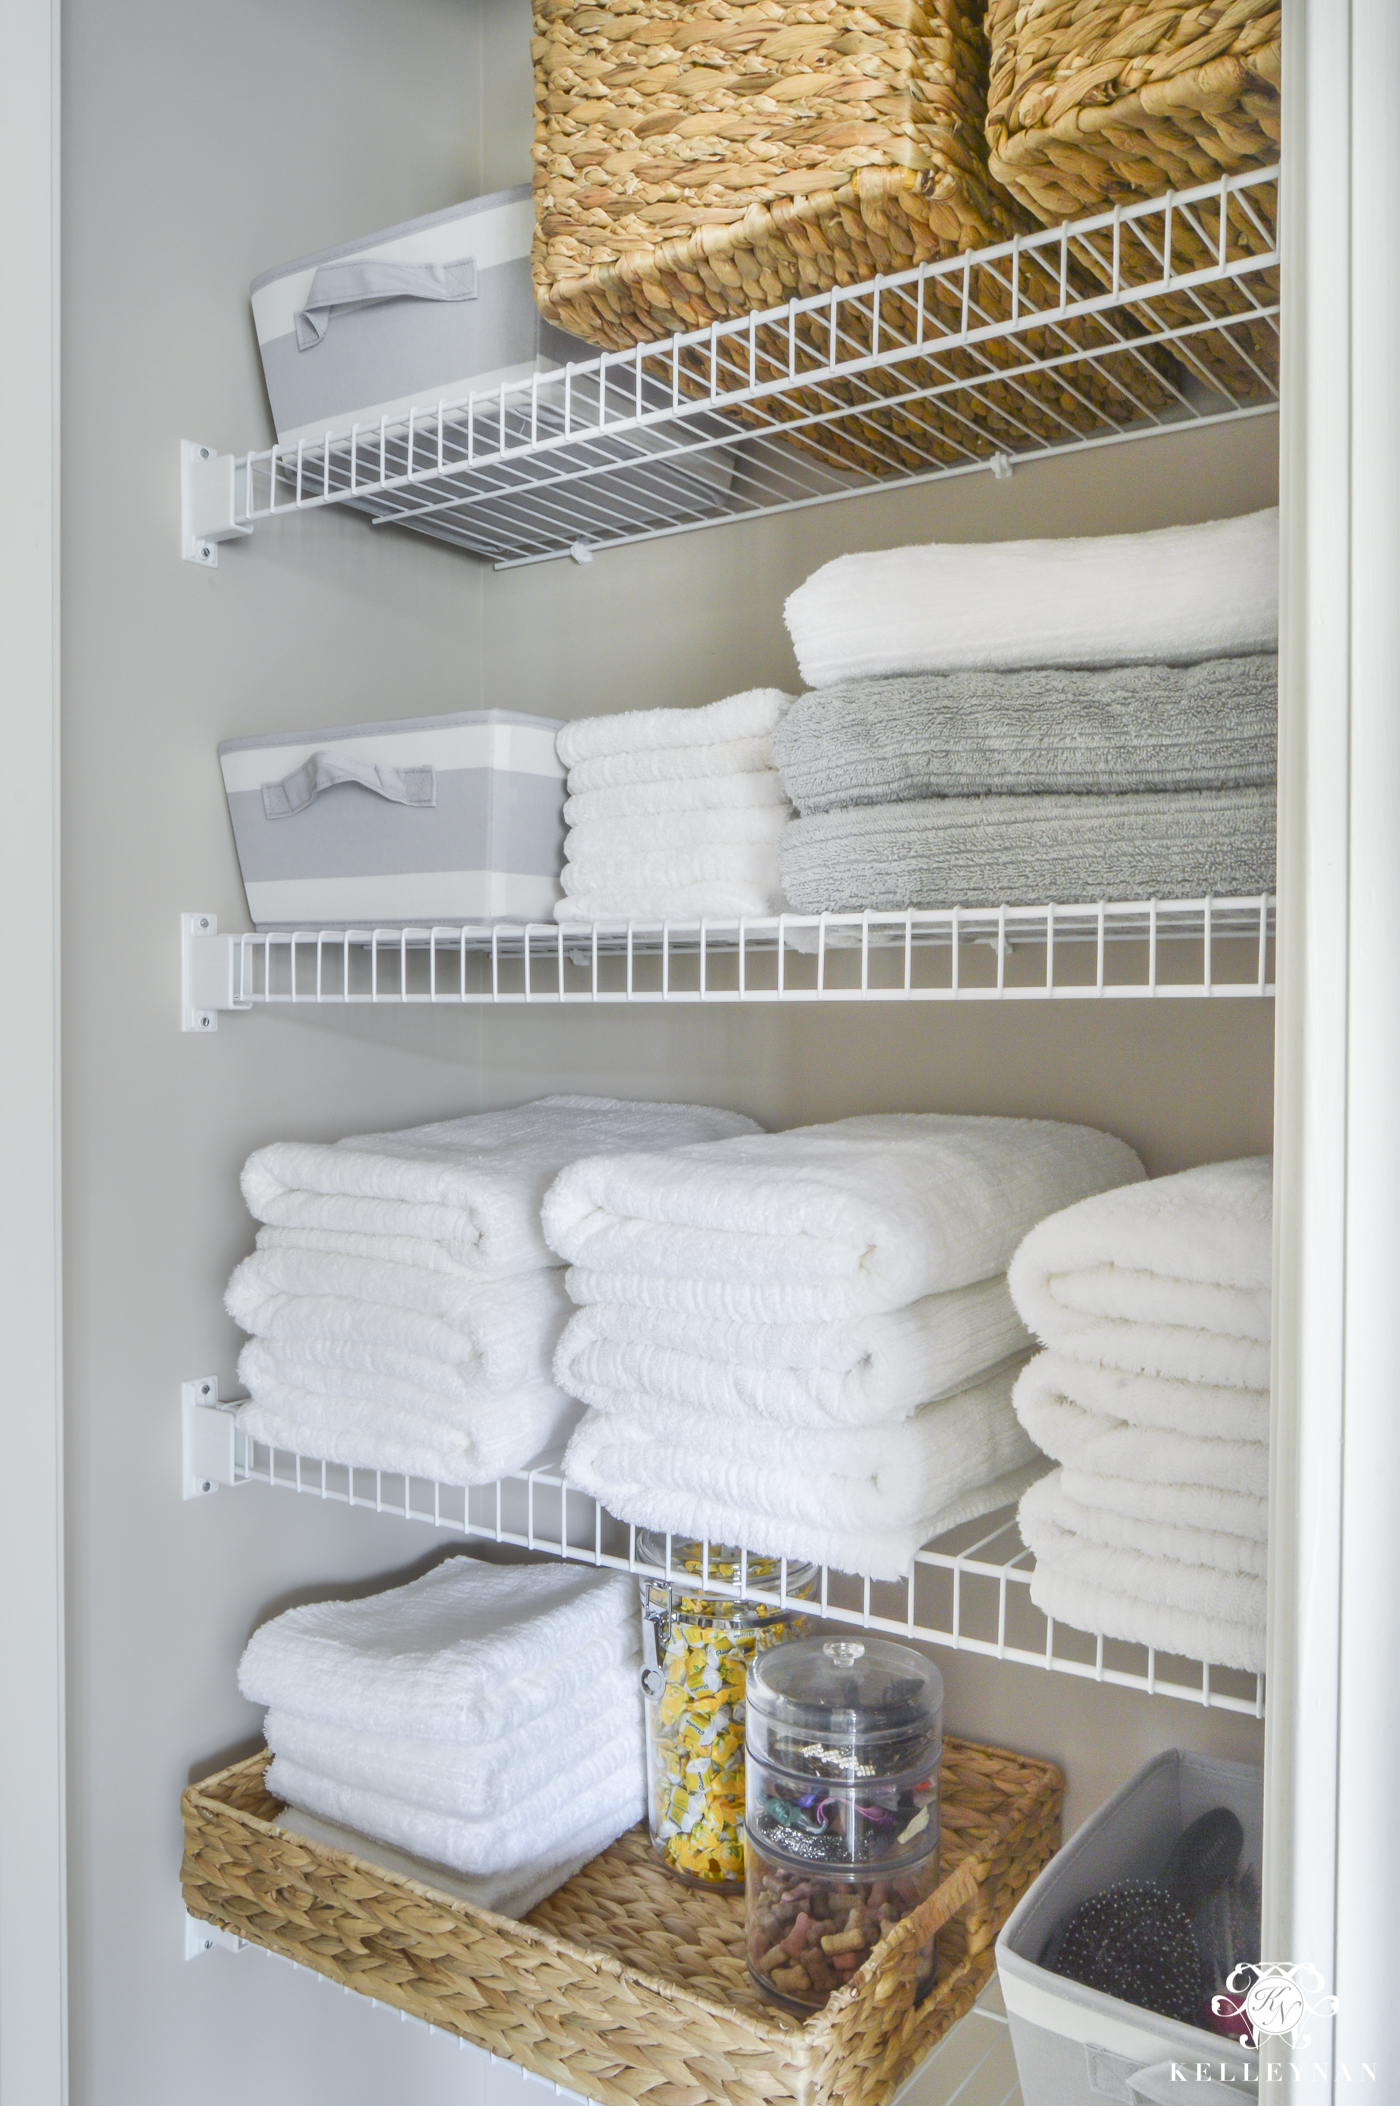 organized bathroom linen closet anyone can have - kelley nan